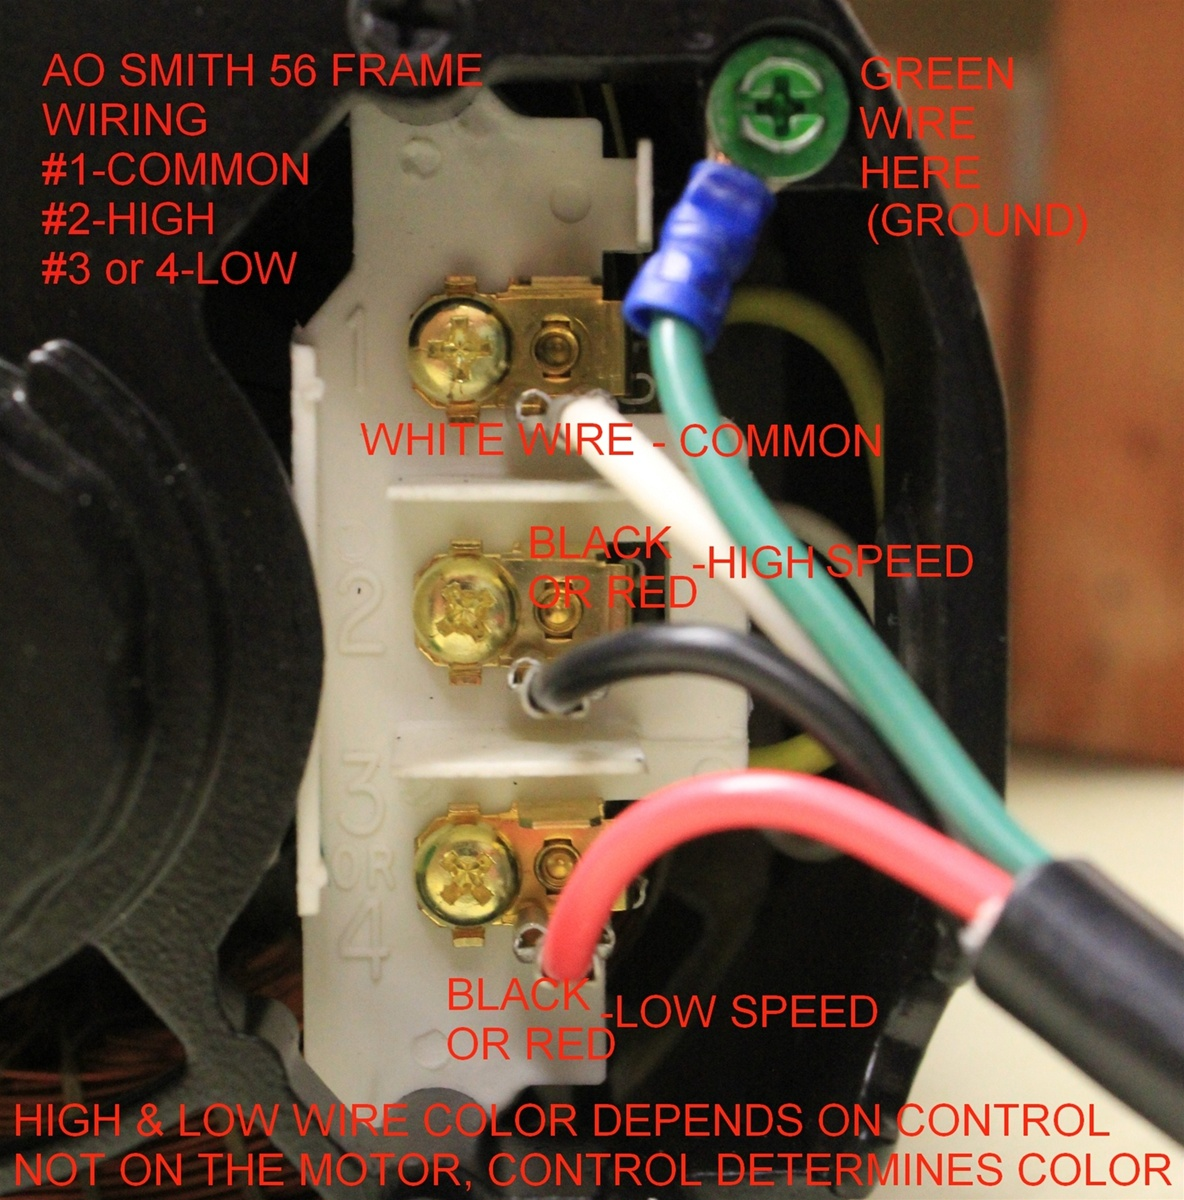 Waterway372162113 7 waterway spa pump 3721621 13 372162113 p240e5252024 pf 40 2n22c waterway executive 56 pump wiring diagram at metegol.co